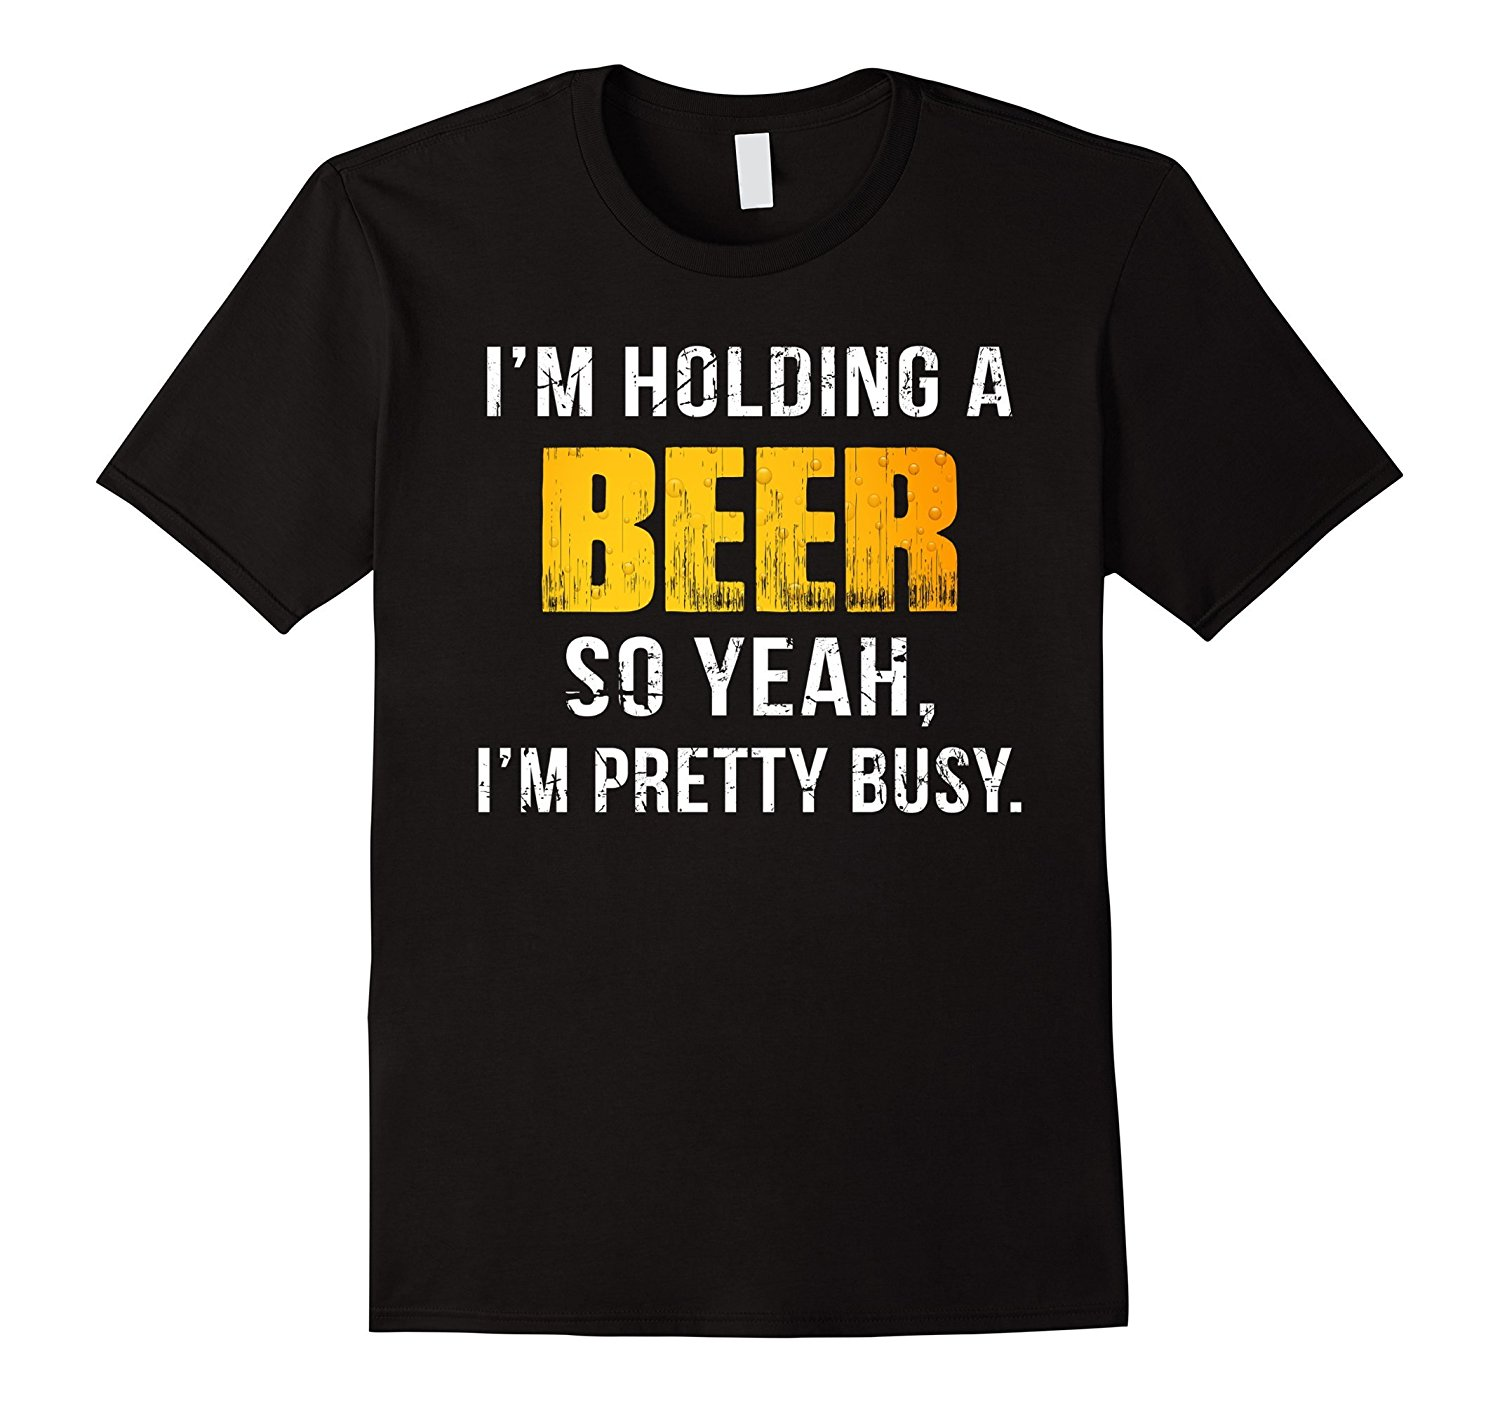 IM HOLDING A BEER SO YEAH, IM PRETTY BUSY FUNNY T-SHIRT New 2017 Fashion T Shirt Men Short Sleeve Funny Design Top Tee